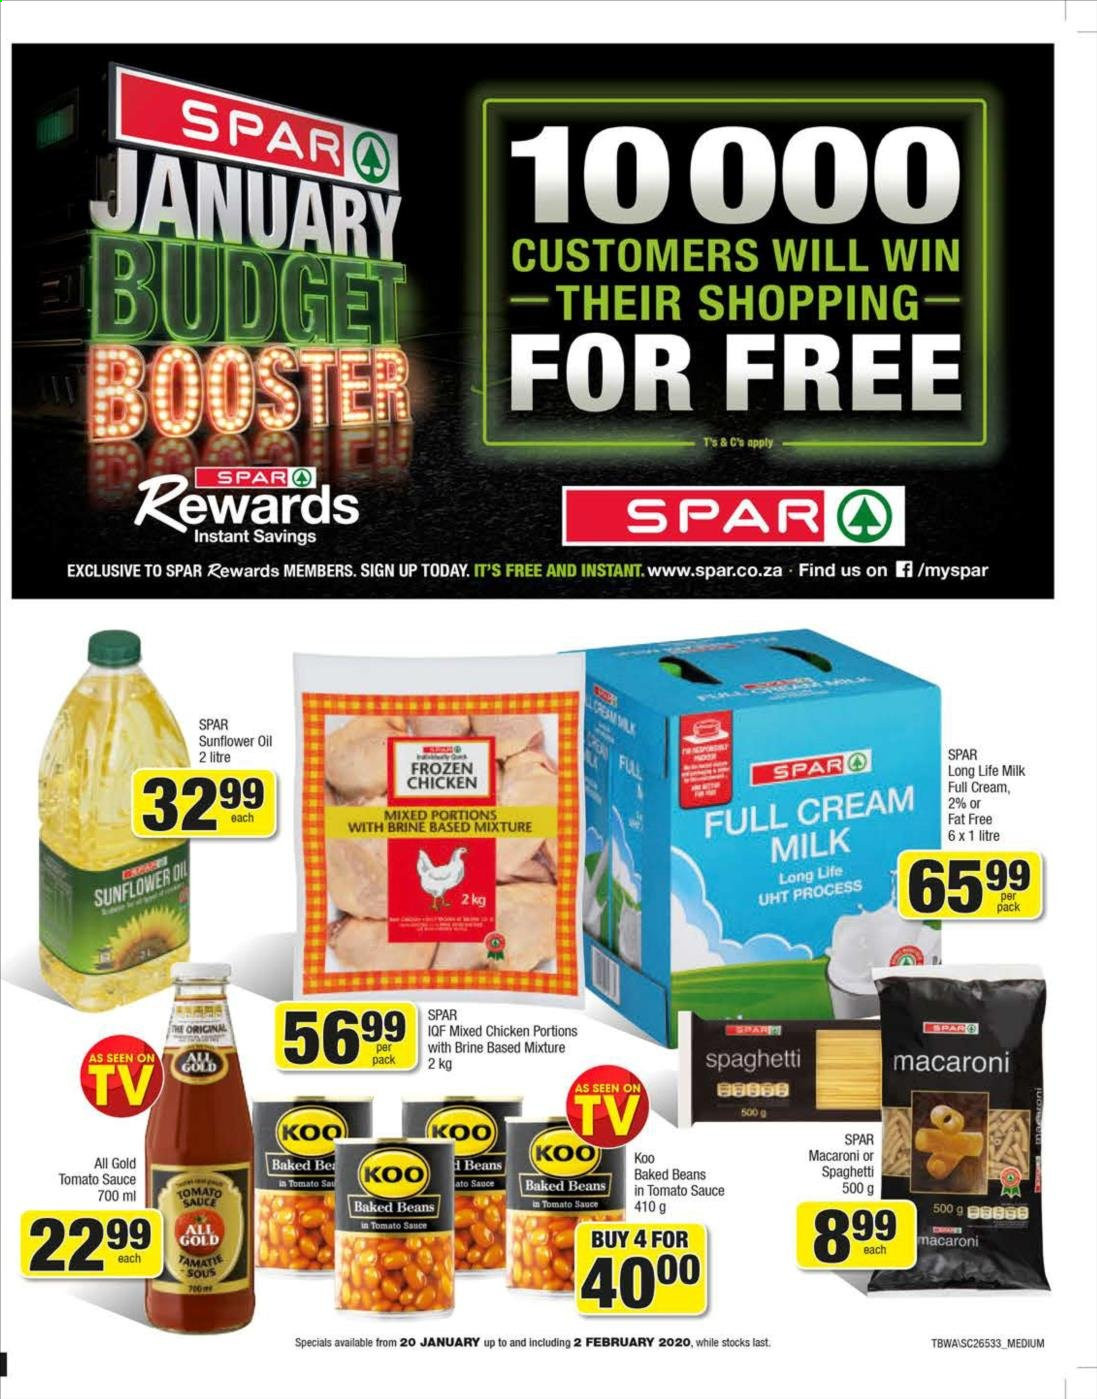 SPAR special - 01.20.2020 - 02.02.2020 - Sales products - beans, cream, milk, spaghetti, sunflower oil, tomato sauce, chicken, macaroni, sauce, sunflower, long life milk. Page 1.